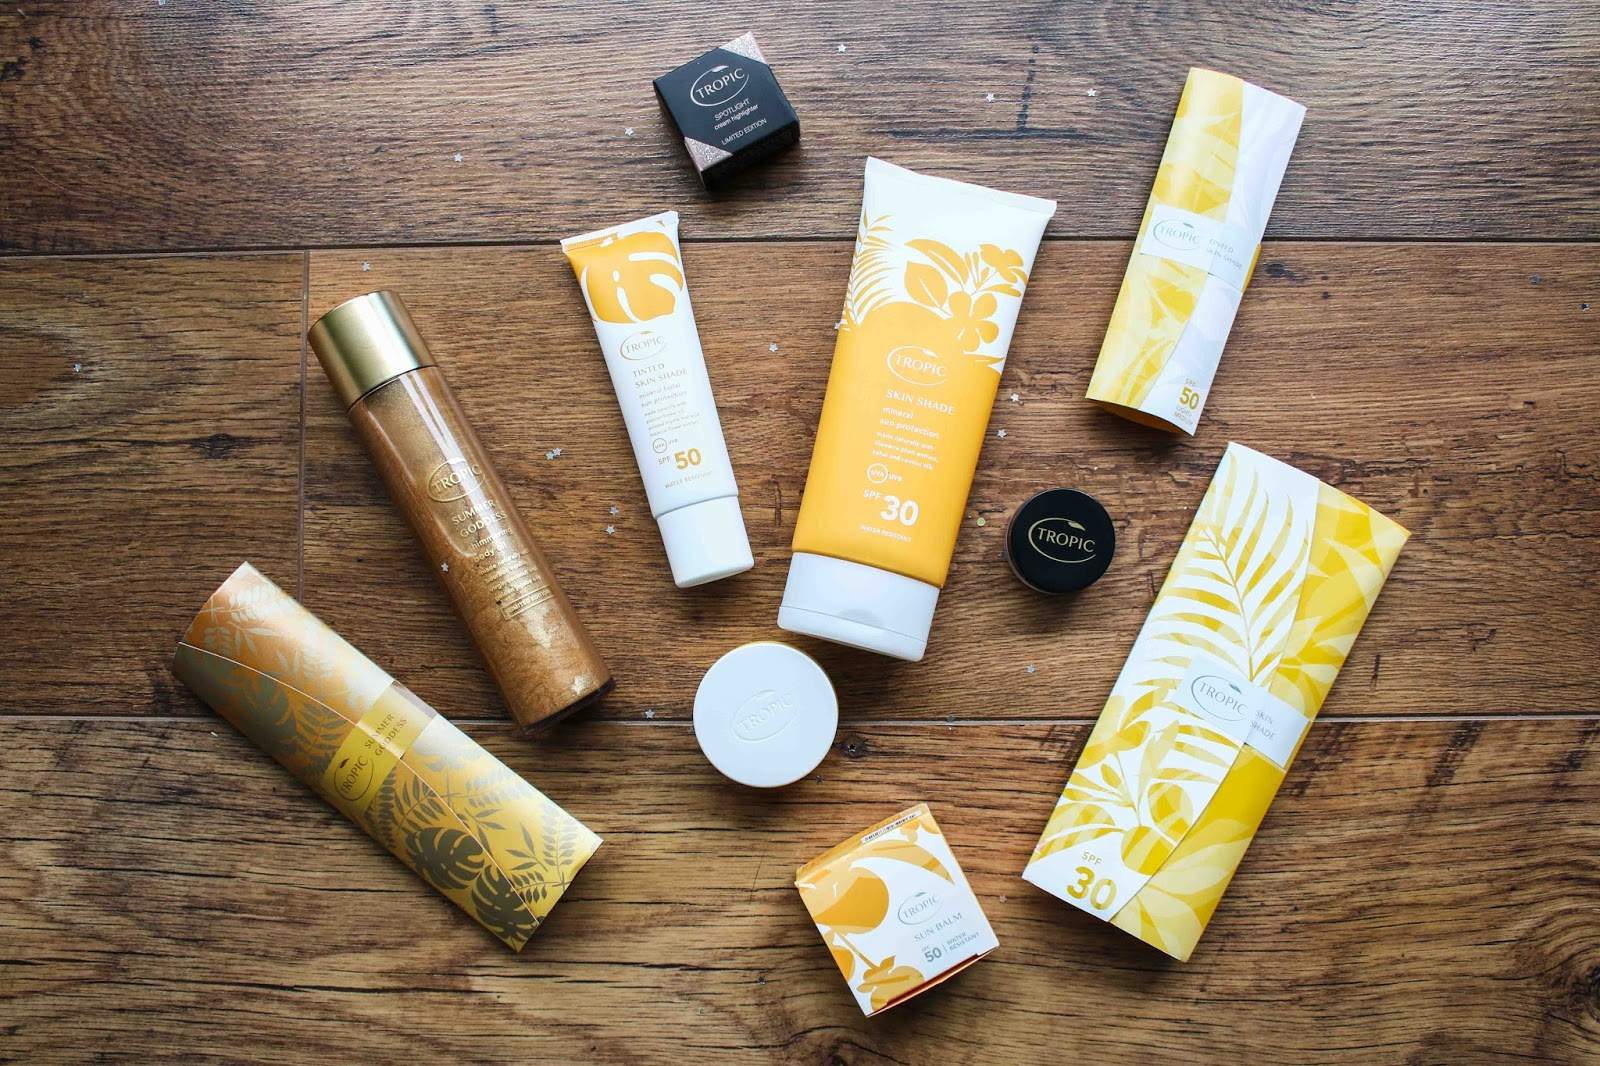 Tropic skincare sunscreen collection